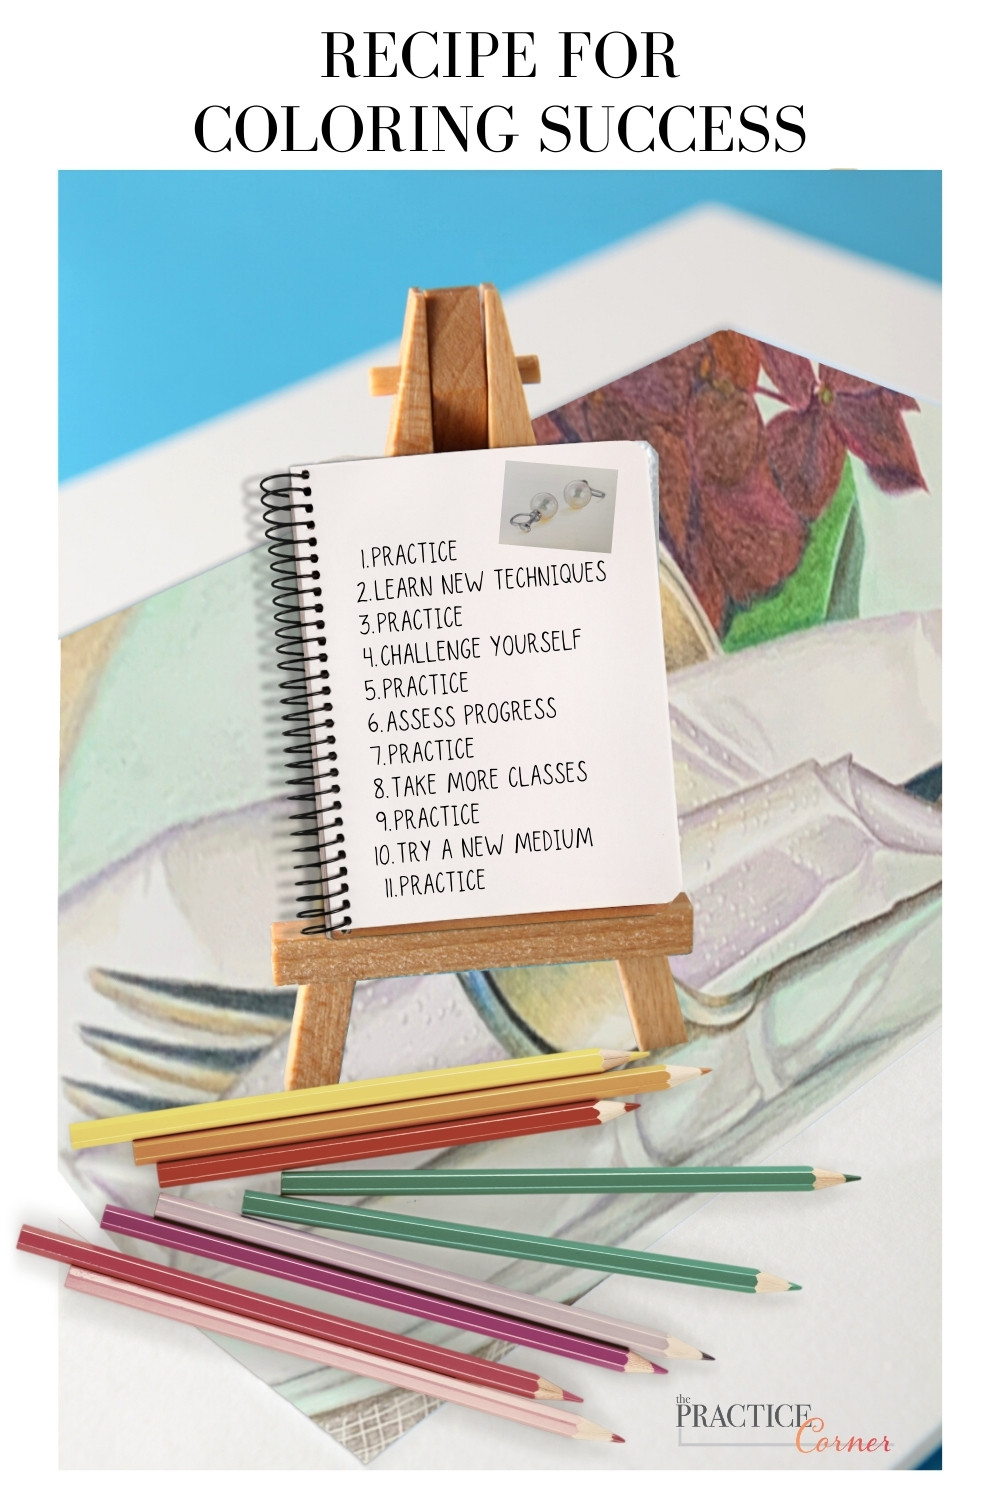 The recipe for coloring success must include practice. | The Practice Corner | How to improve your coloring | #coloringconfidence #coloredpencilpractice #copicmarkerpractice #coloringtechniques